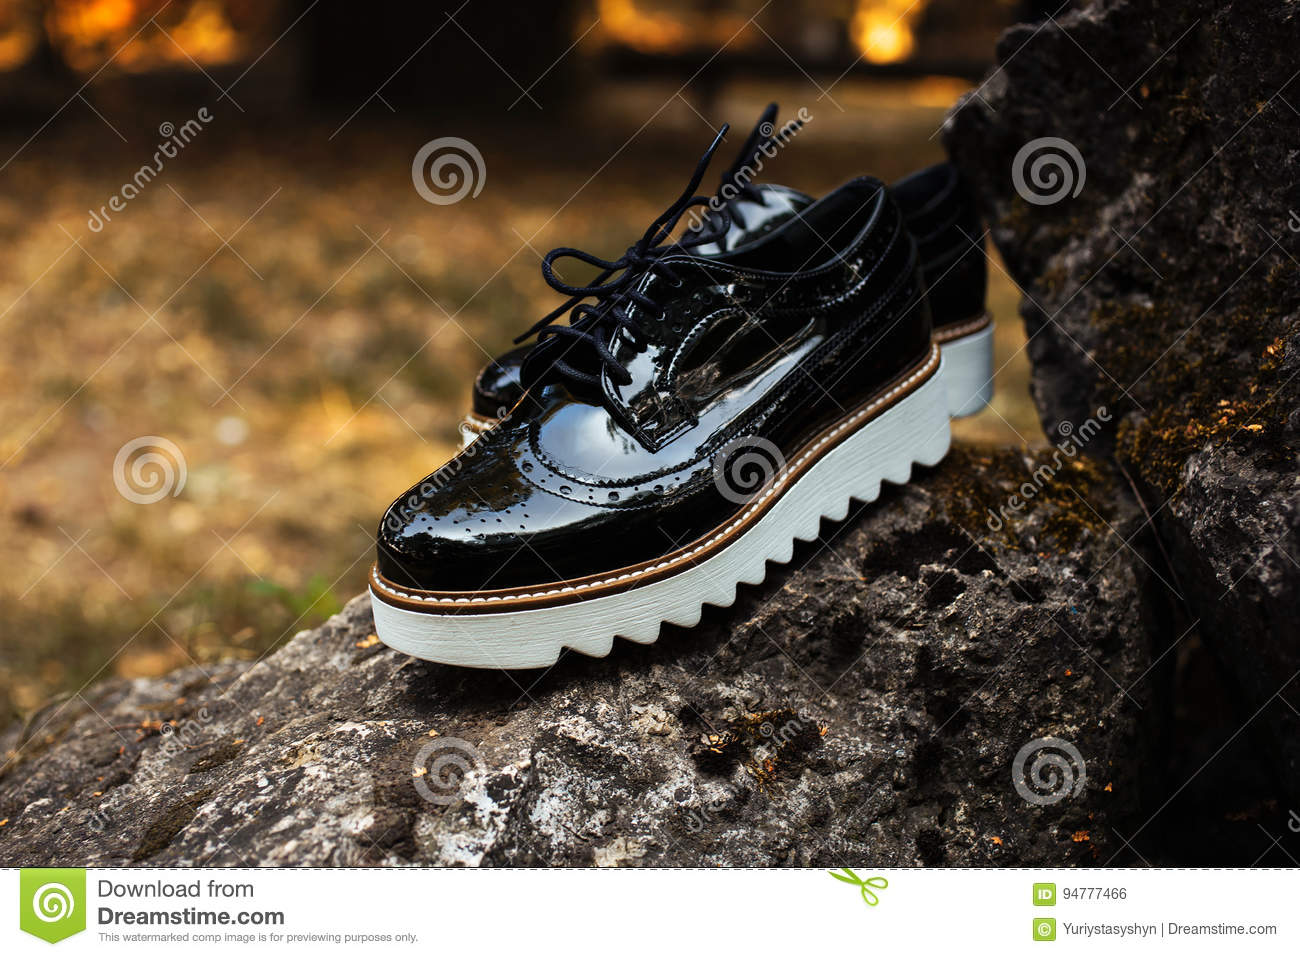 8b39d9da44d Black shiny patent leather women`s brogues shoes with white soles on old  gray stones